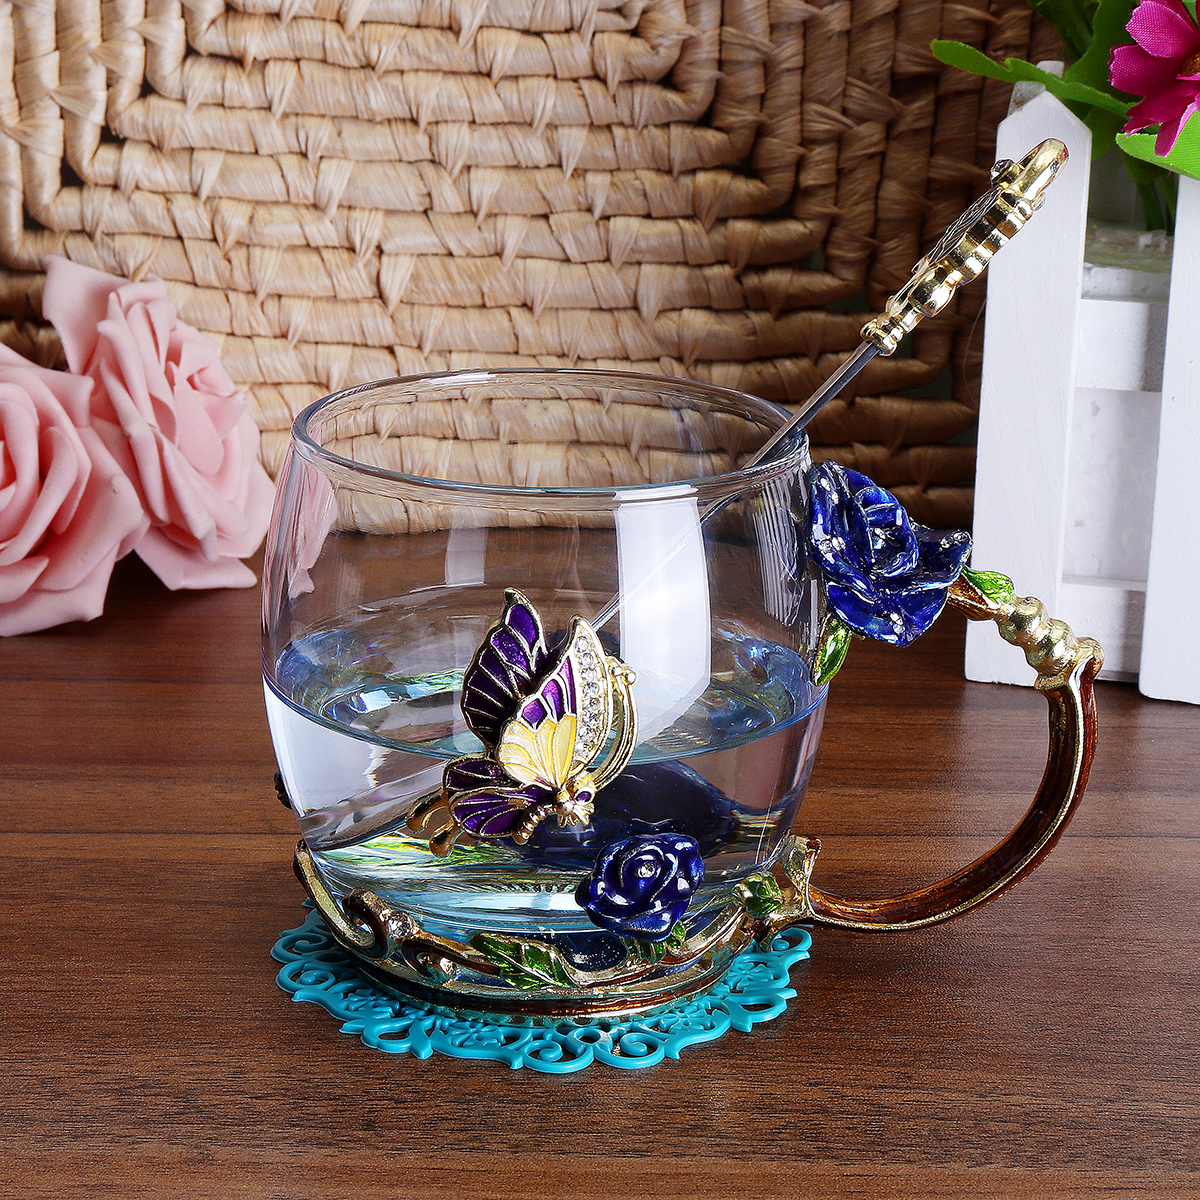 Beauty And Novelty Enamel Coffee Cup Mug Flower Tea Glass Cups for Hot and Cold Drinks Beauty And Novelty Enamel Coffee Cup Mug Flower Tea Glass Cups for Hot and Cold Drinks Tea Cup Spoon Set Perfect Wedding Gift